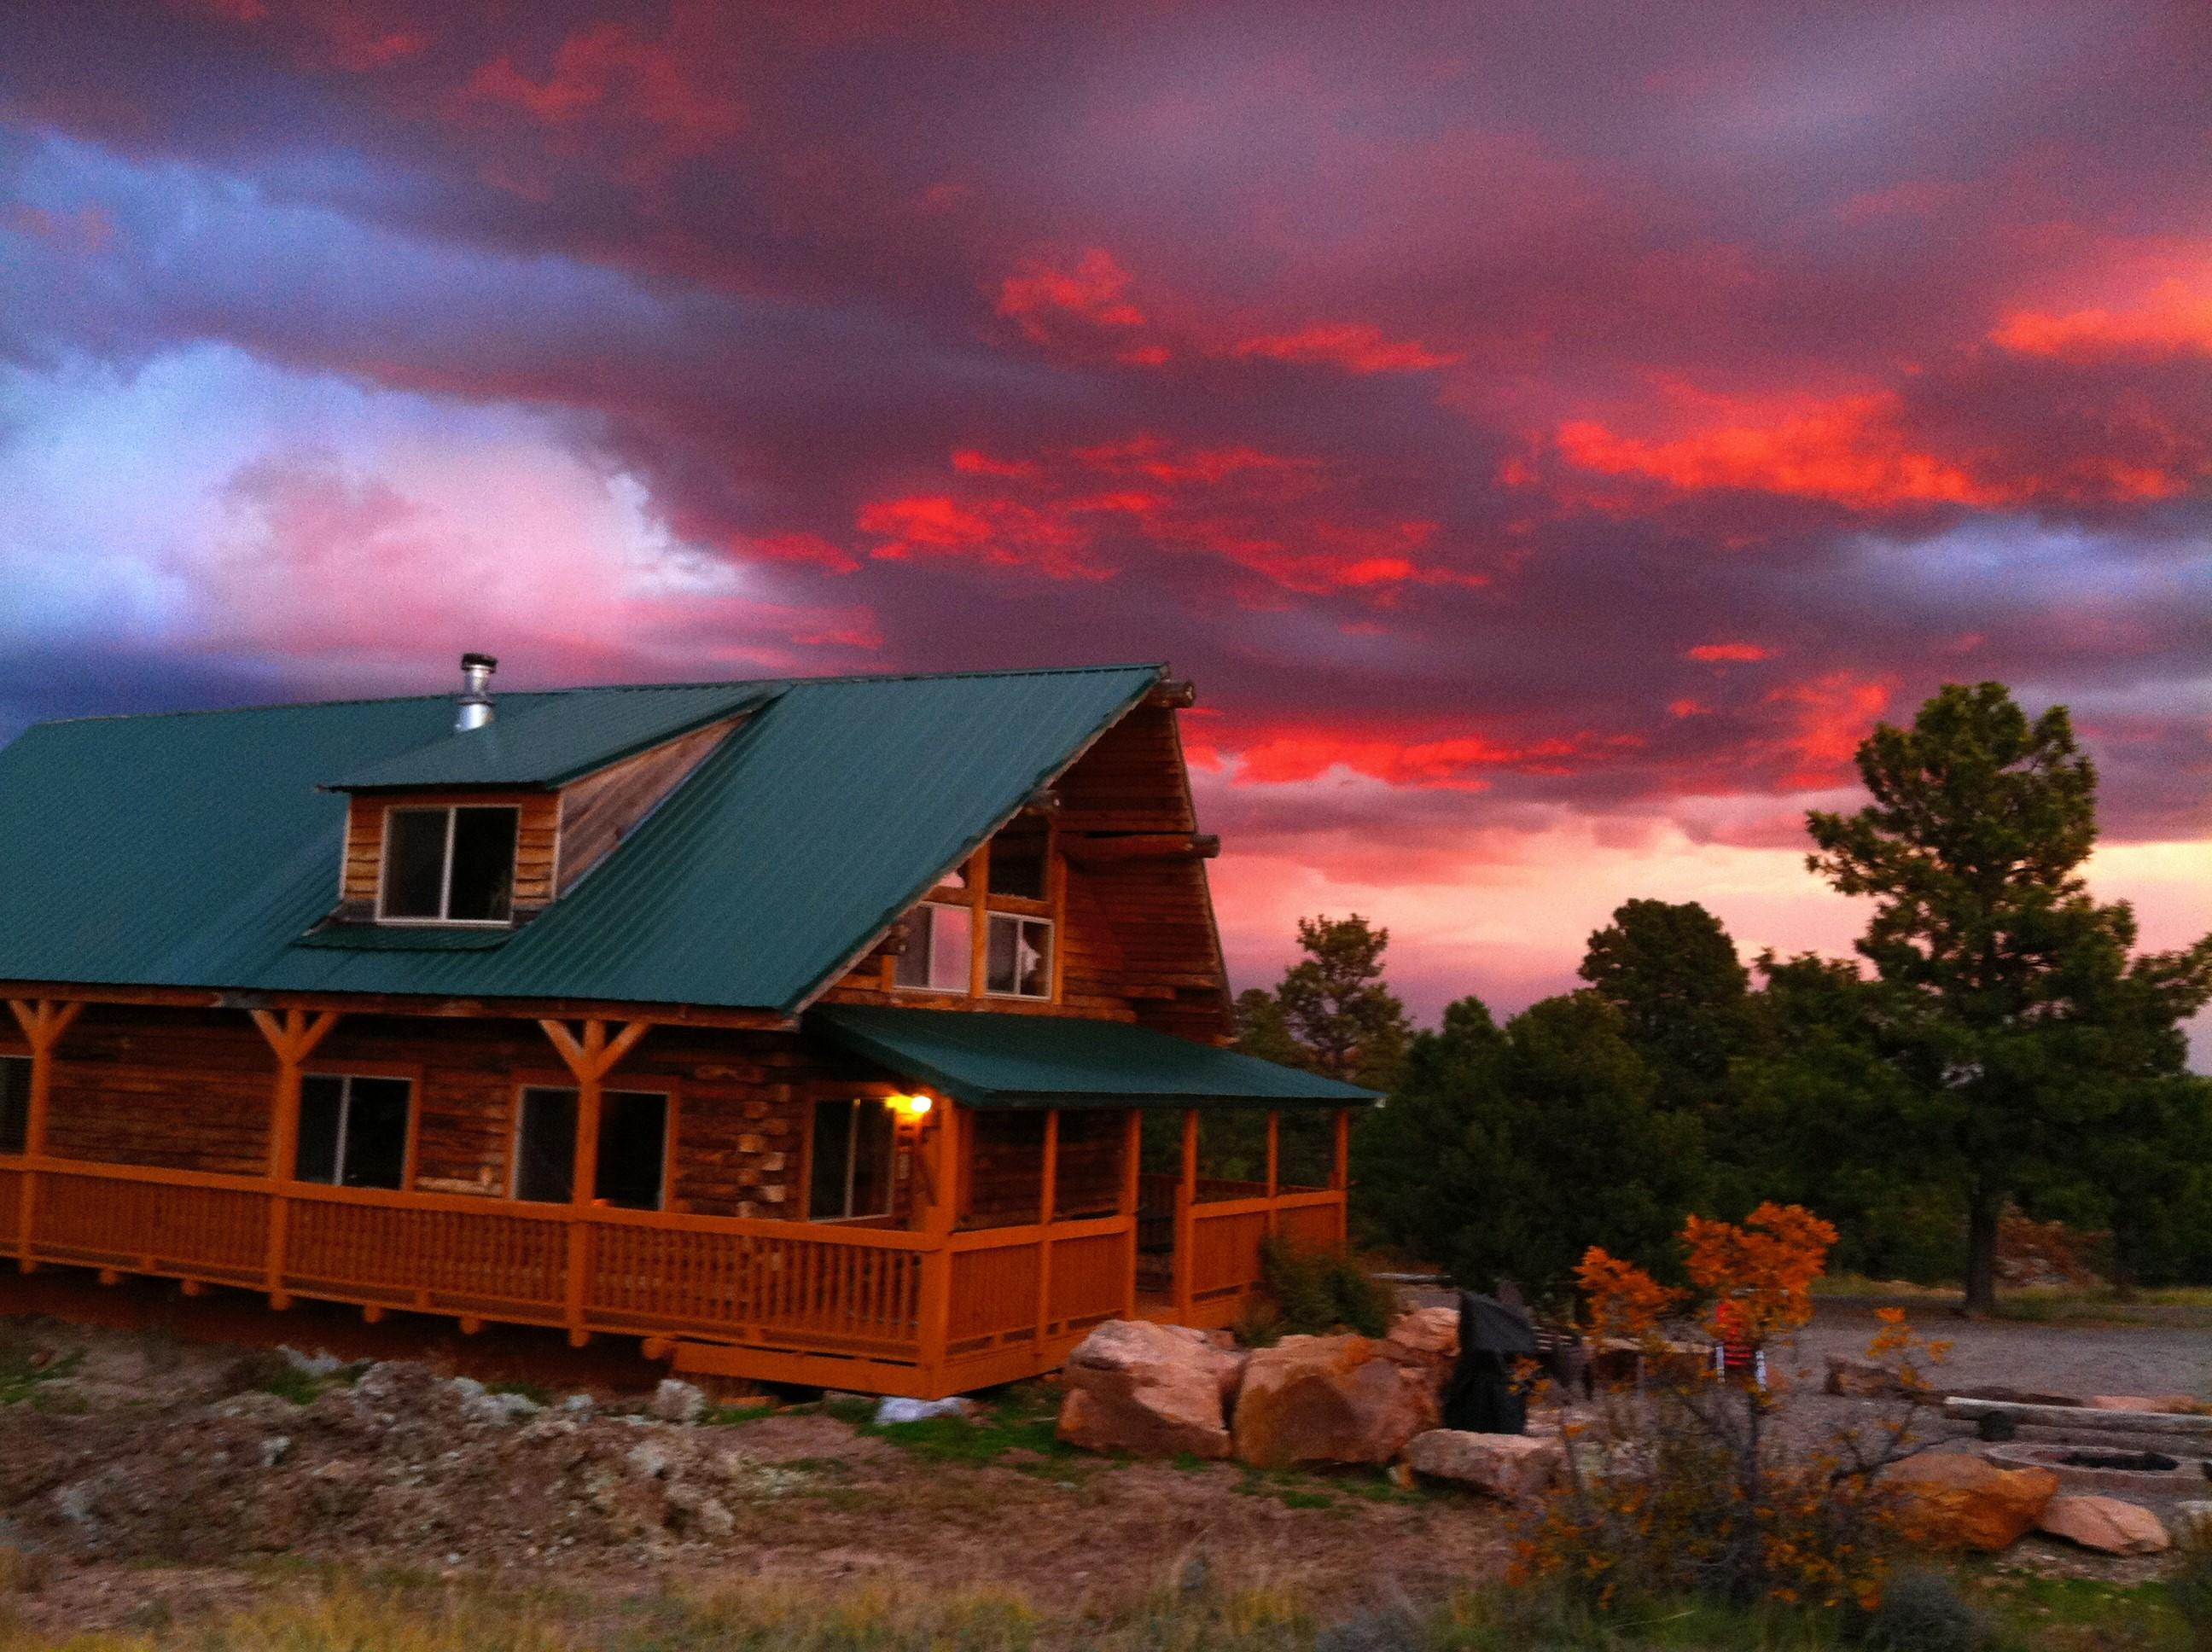 Merveilleux Canyonlands Lodging Provides Individual Cabin And Lodge Reservations For 2  To 60 People Throughout Monticello, Blanding, And Moab, Utah.